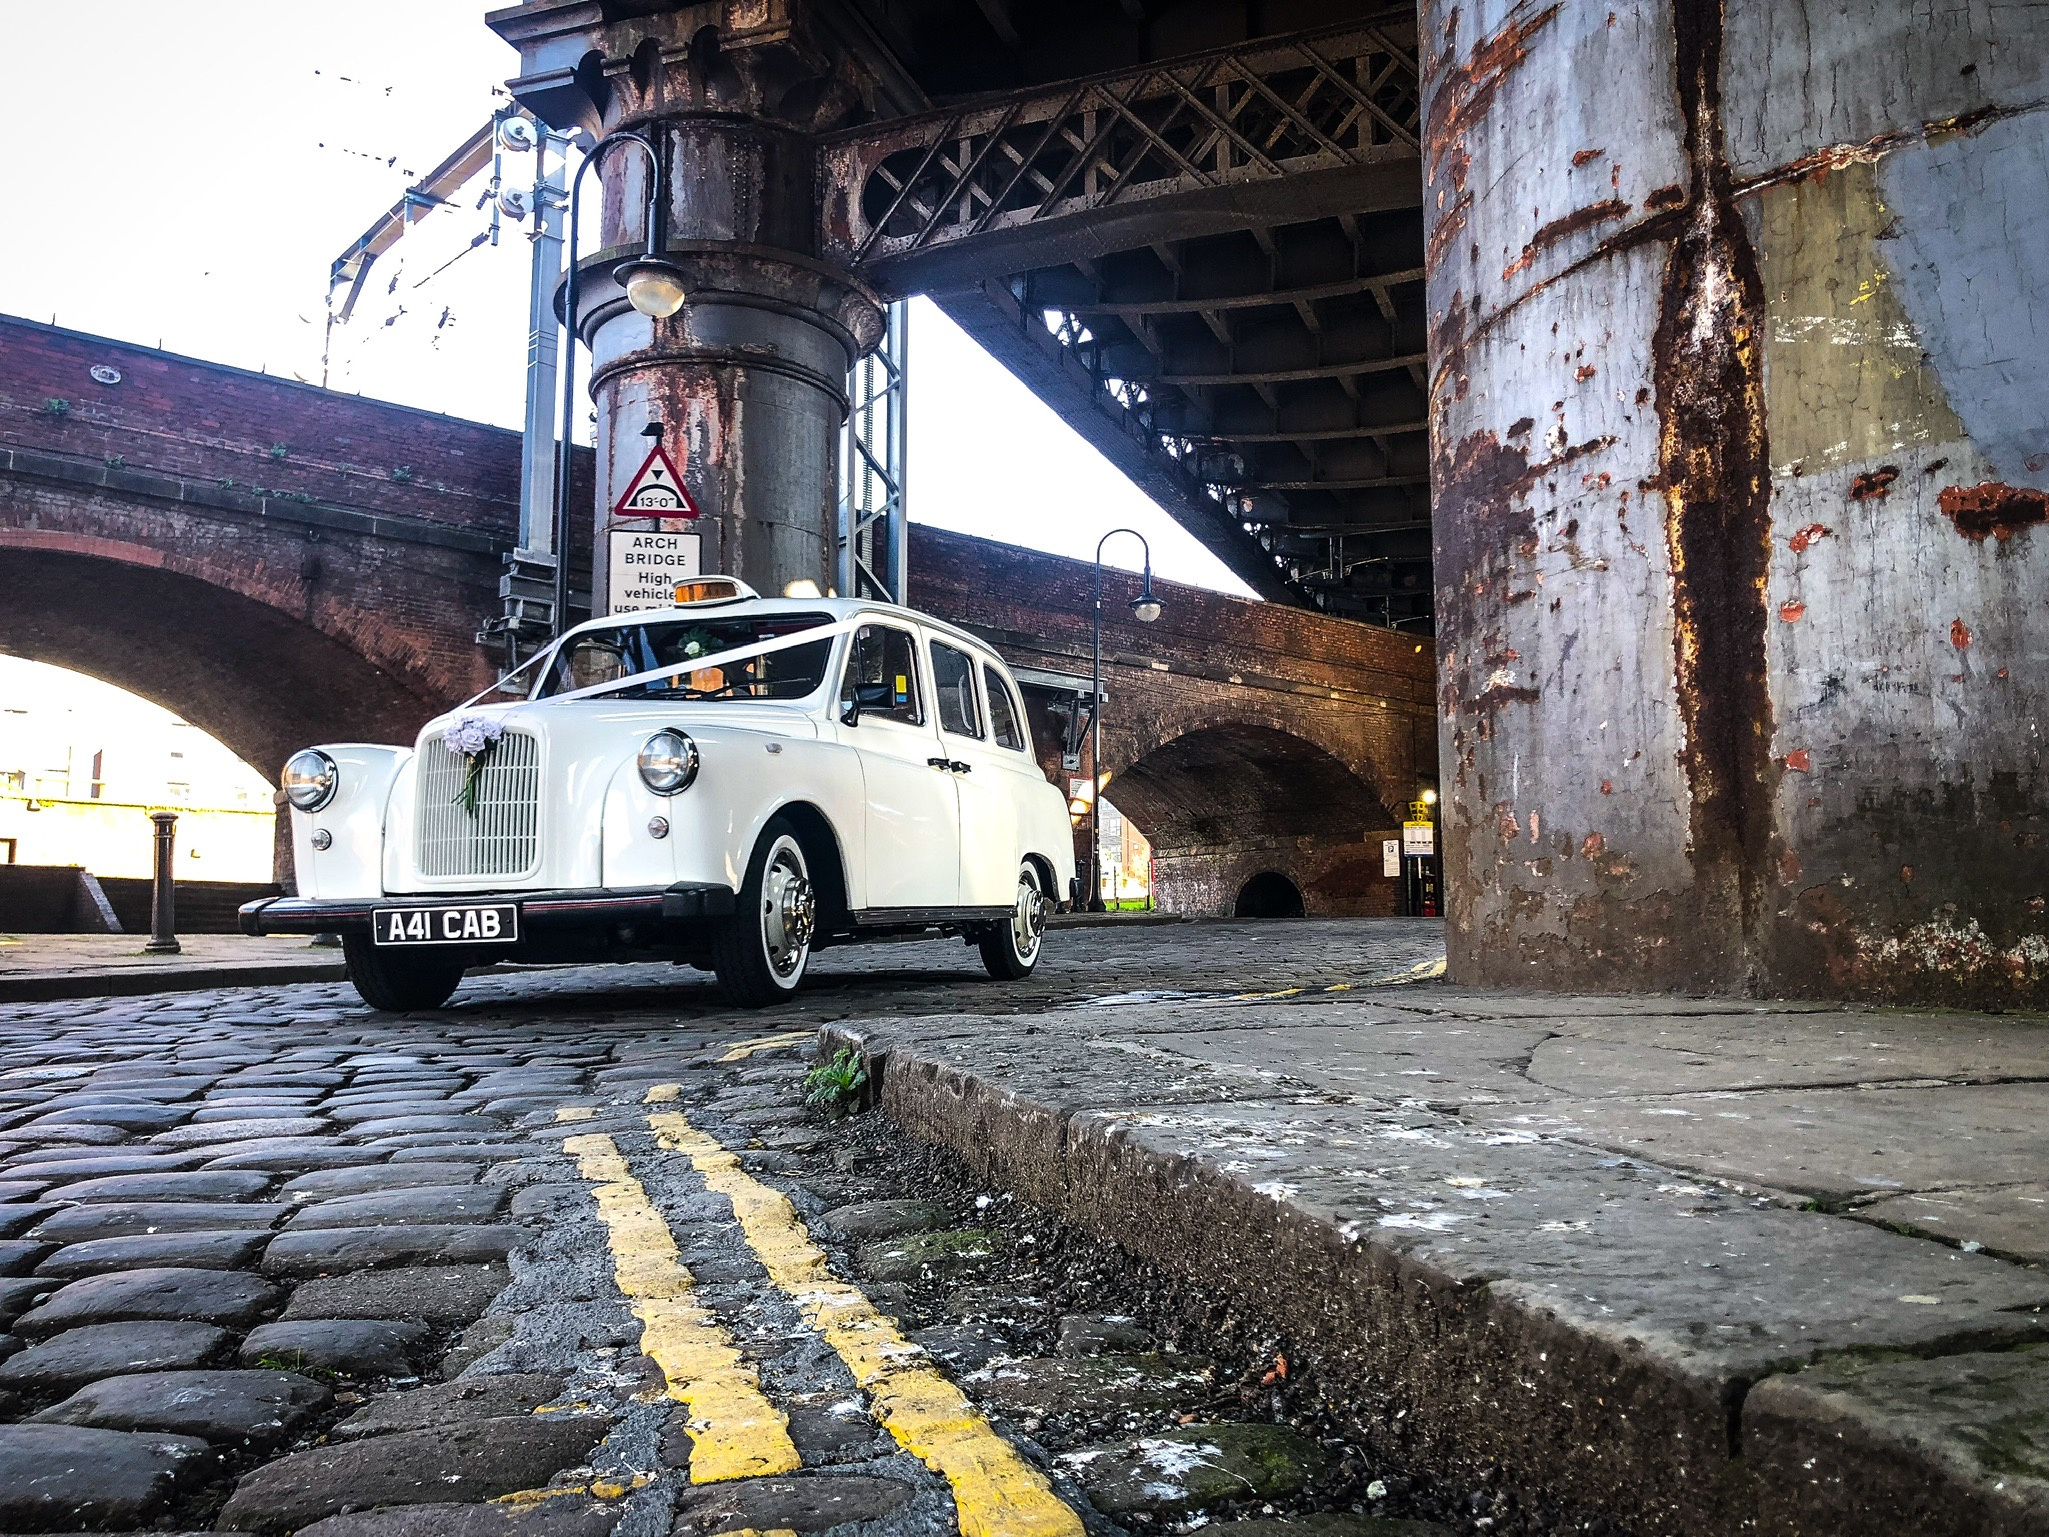 https://0501.nccdn.net/4_2/000/000/086/598/classic-wedding-car-manchester-uk-2049x1537.jpg